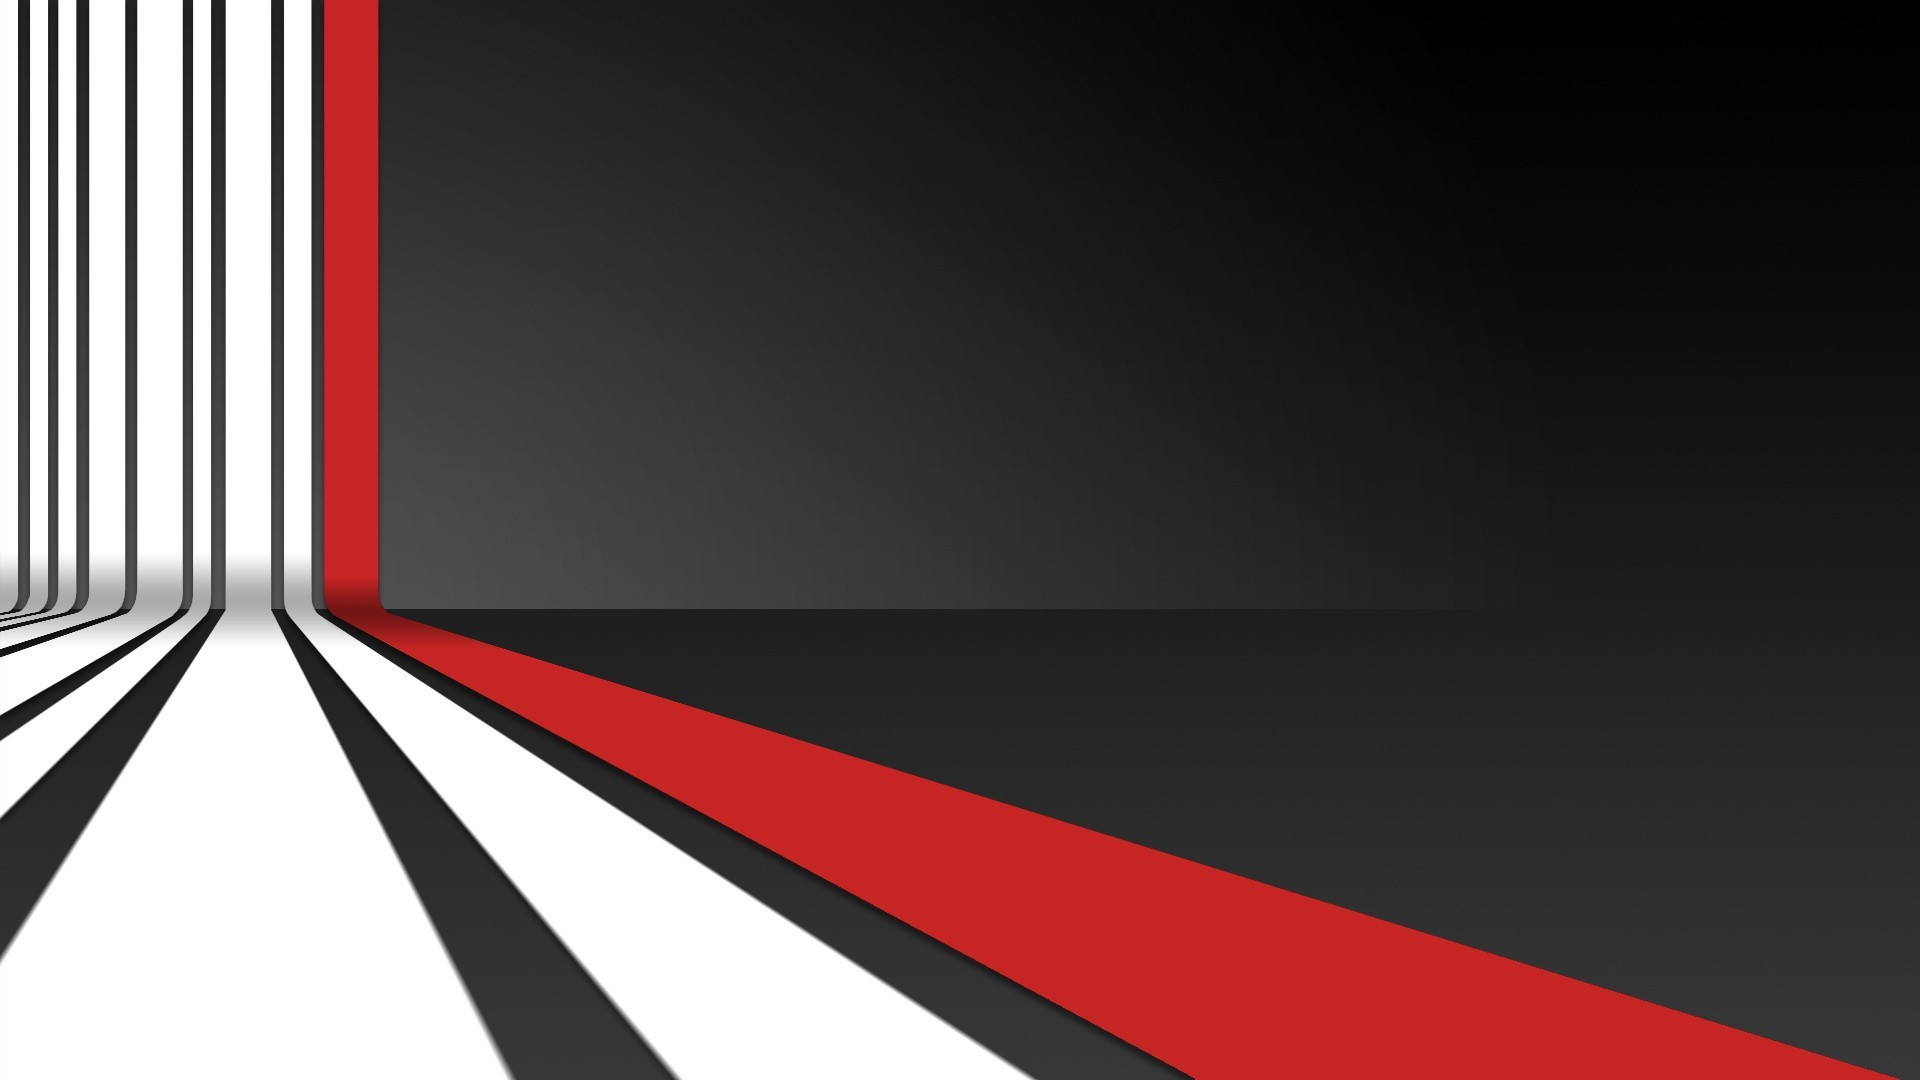 Abstract Free HD Black And Red Wallpapers.